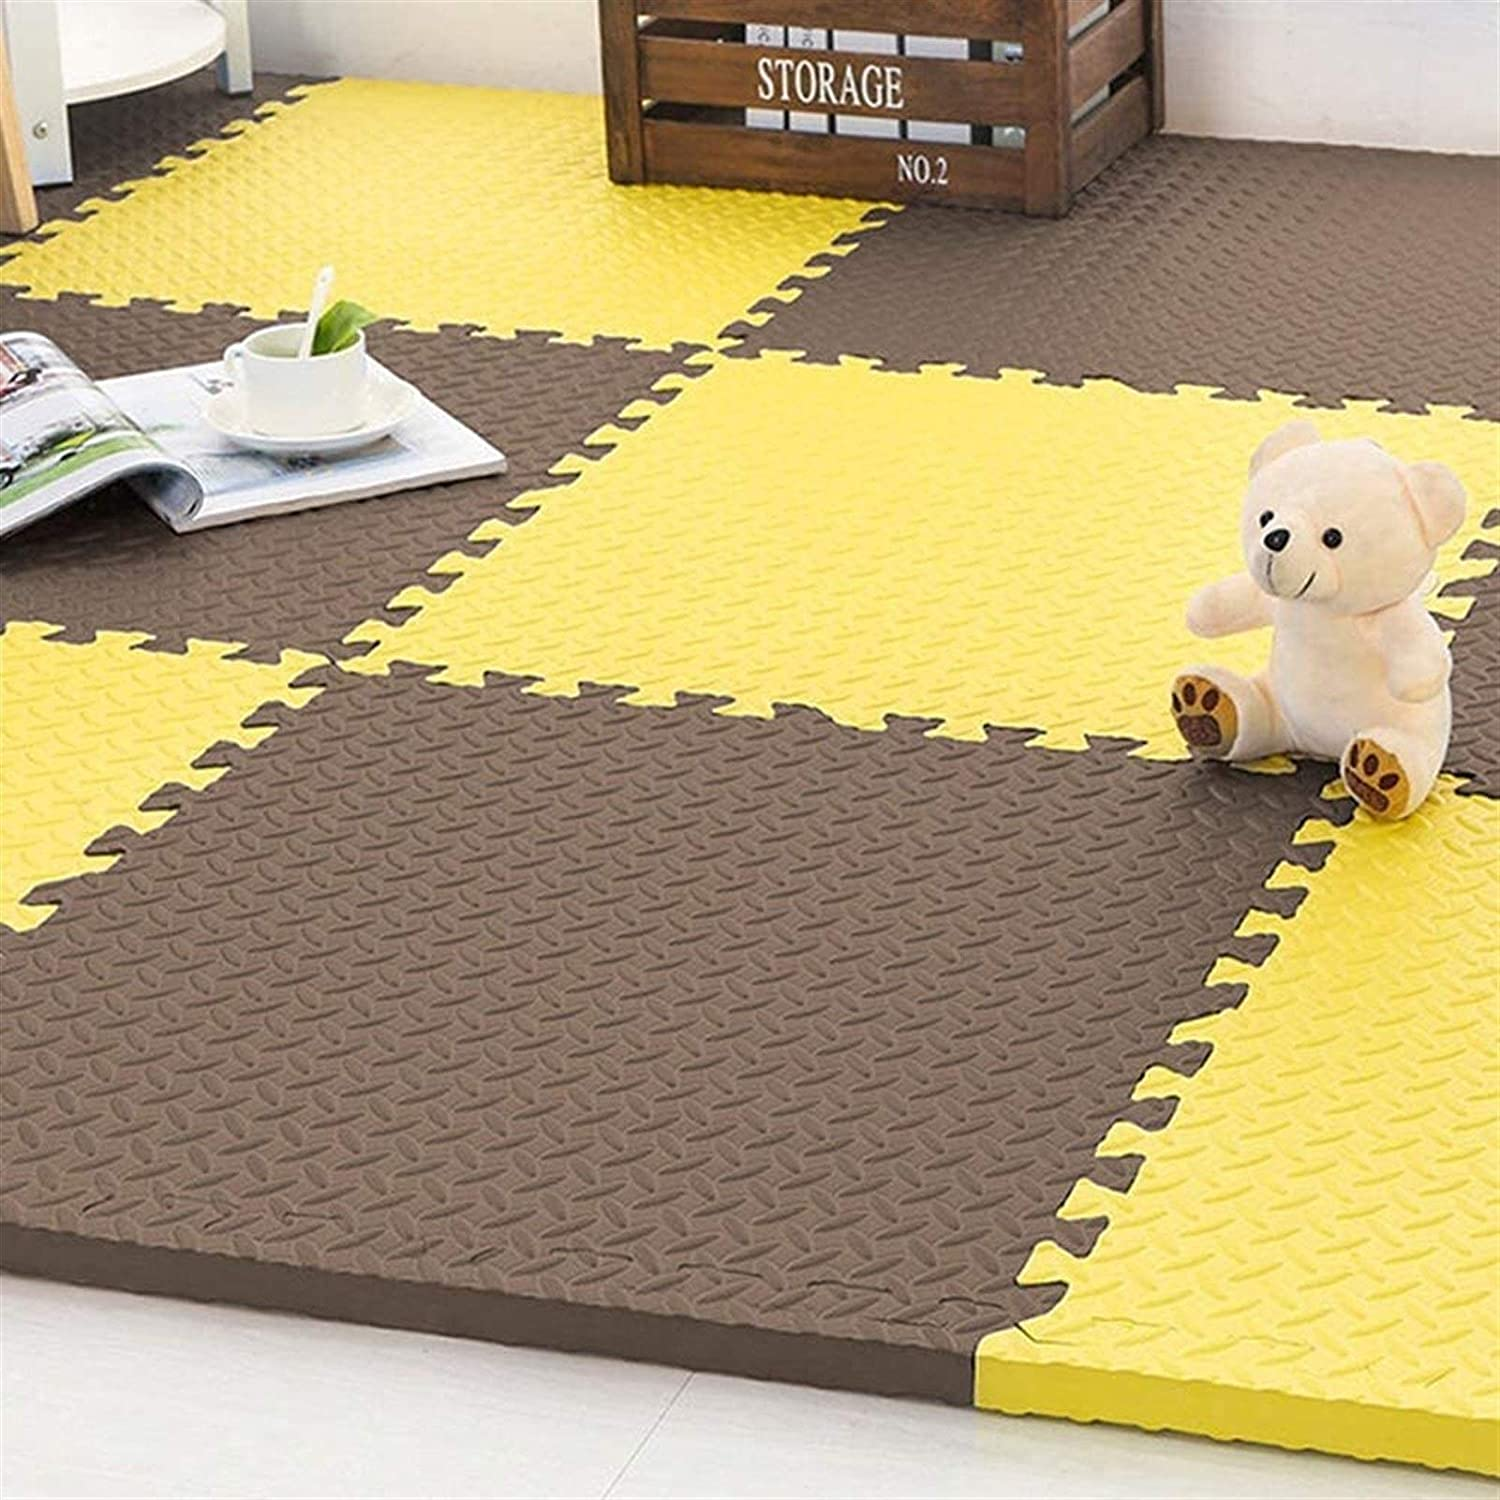 Puzzle Play Mats exercise water-and Cheap SALE Start mat noise-resista The Very popular